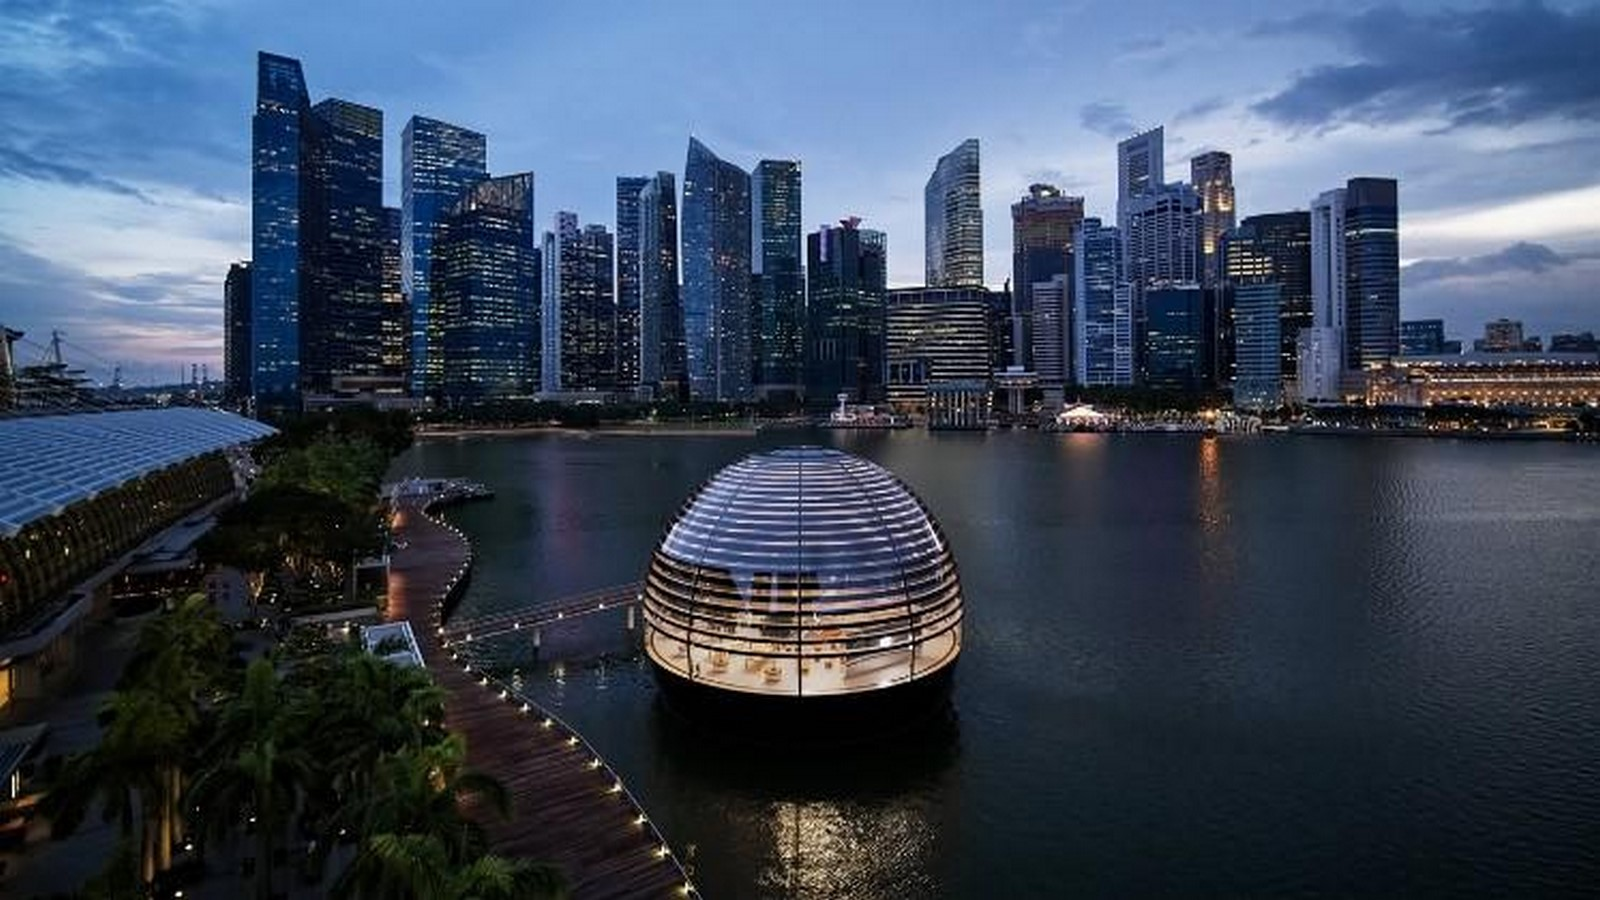 20 Examples of World's Best Cities - Sheet1